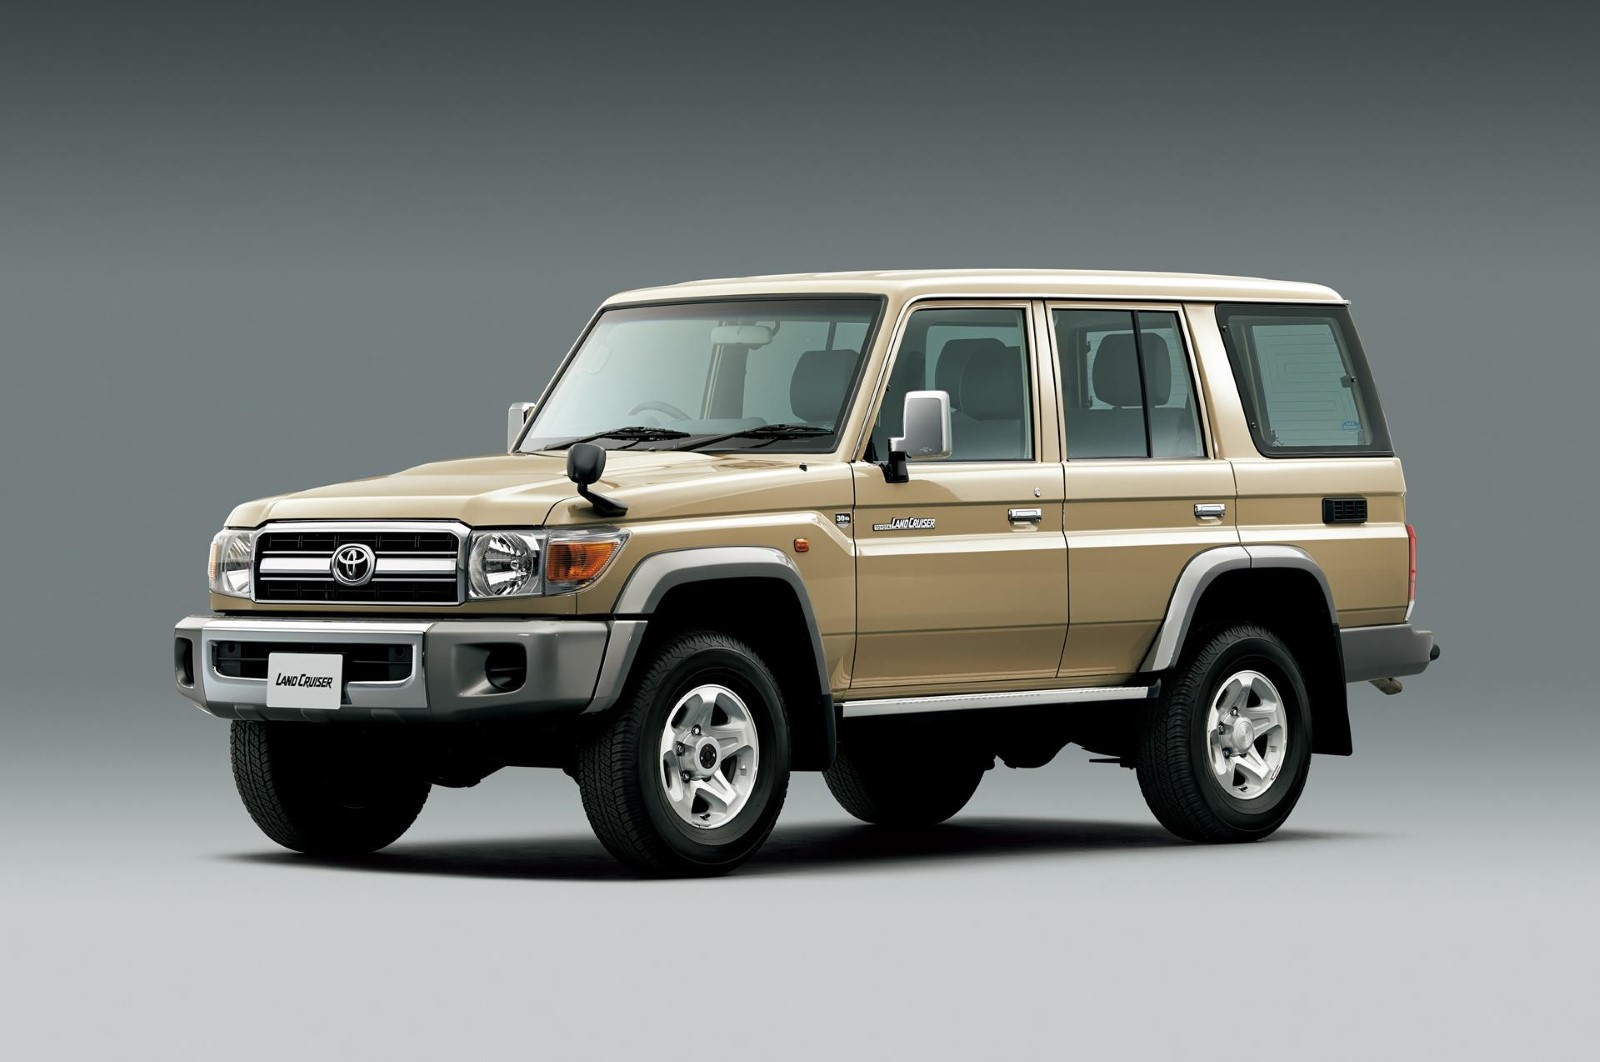 Fj Toyota 2017 >> Toyota surprises with Land Cruiser 70 re-release